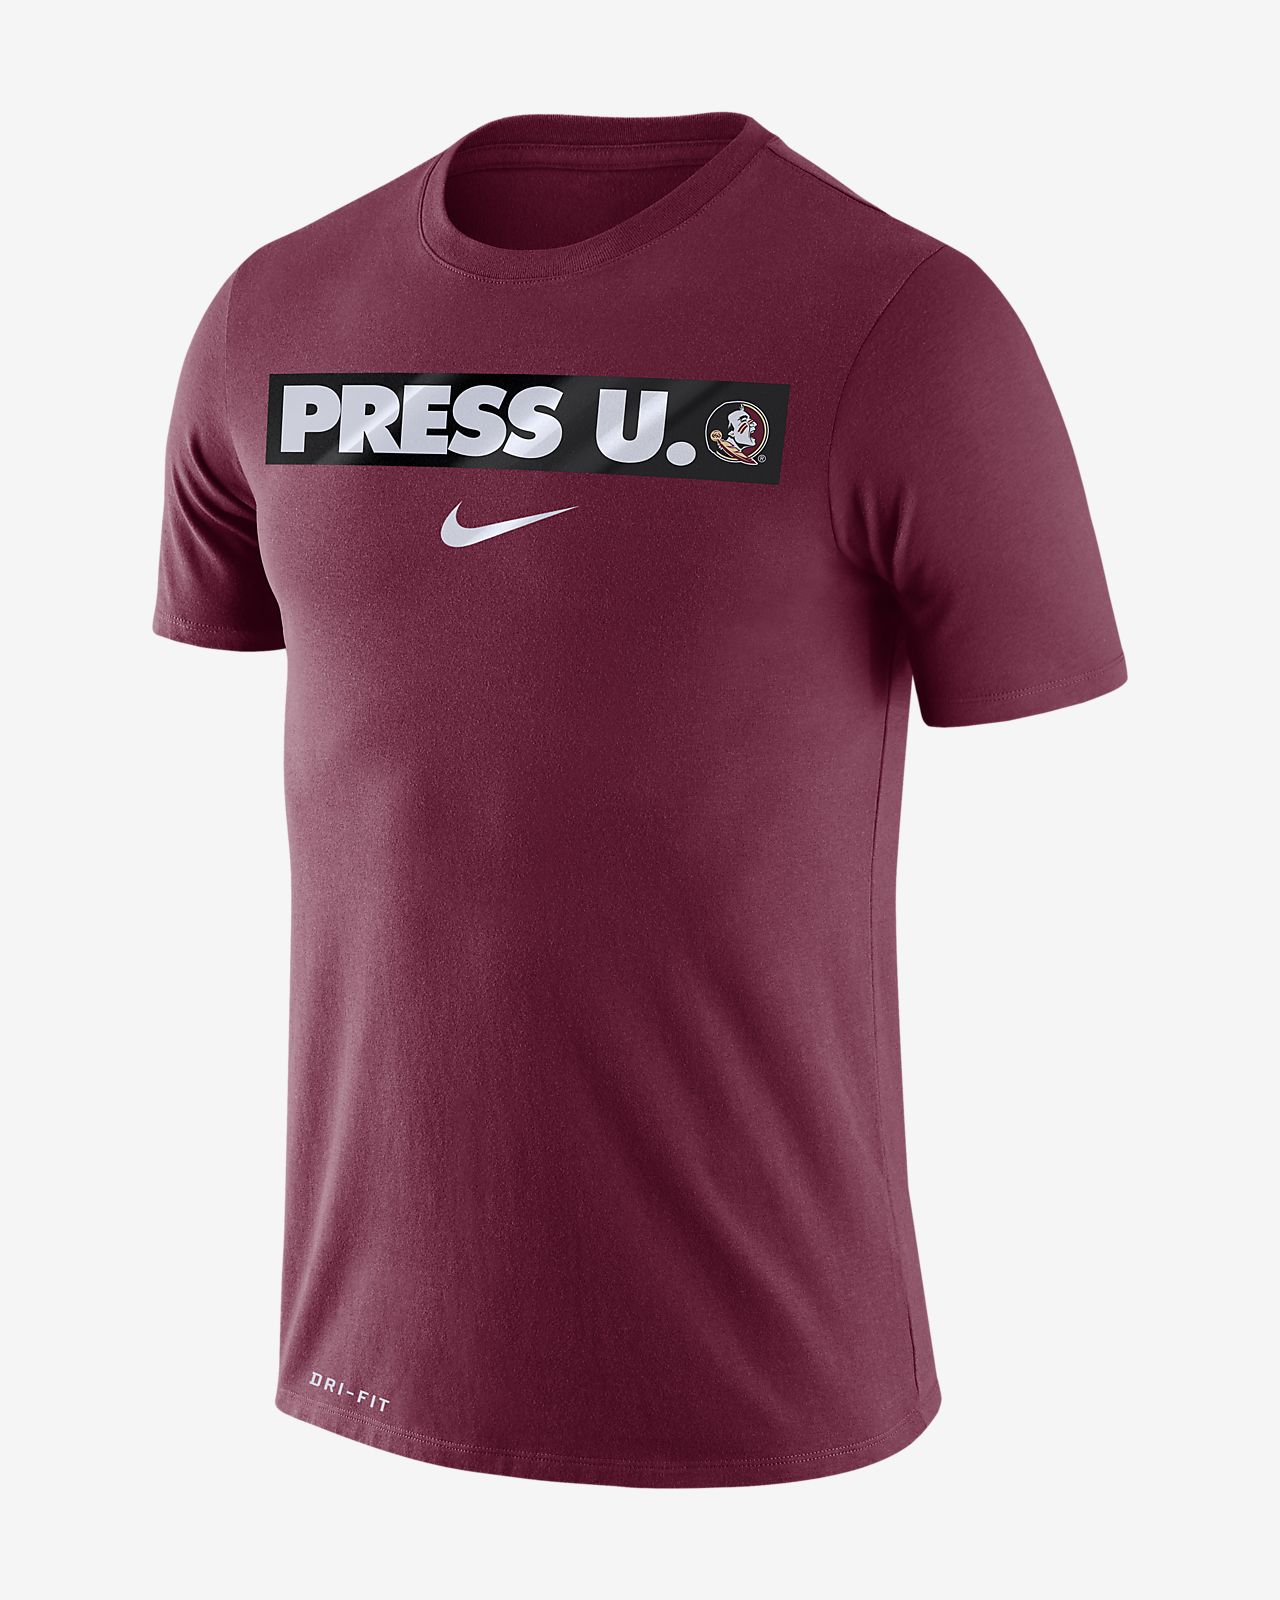 finest fabrics classic styles beautiful design Nike College Dri-FIT (Florida State) Men's T-Shirt